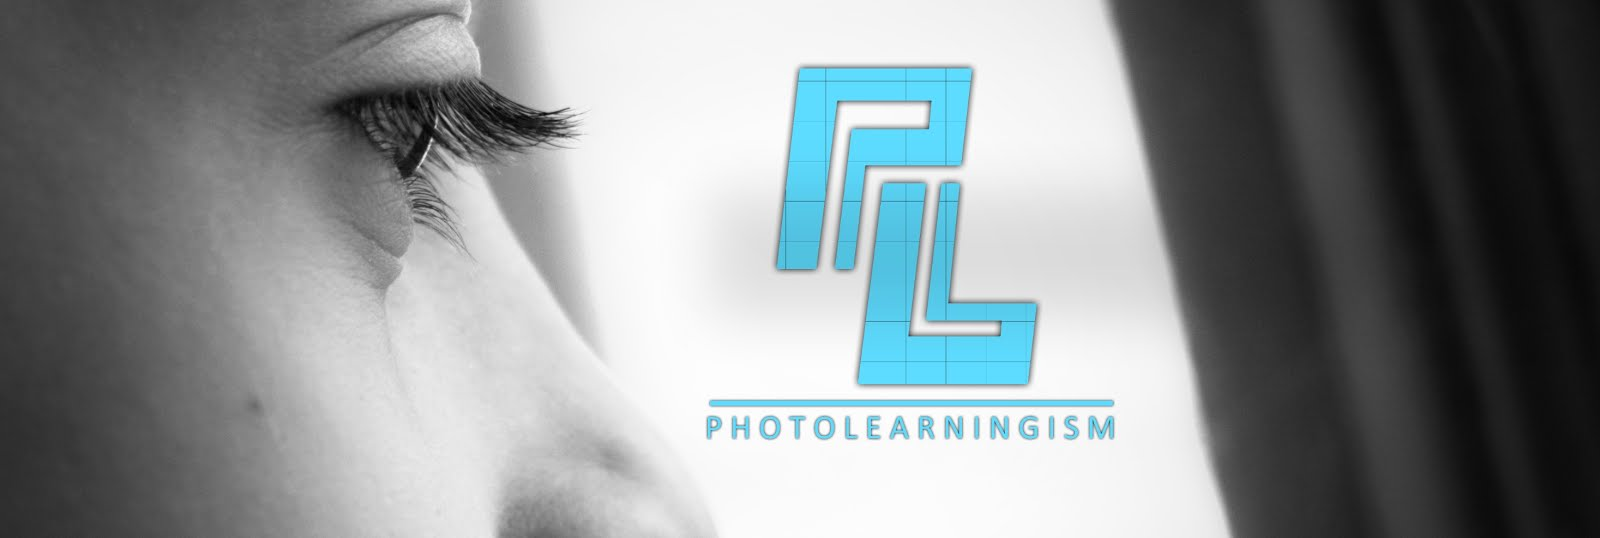 Photolearningism